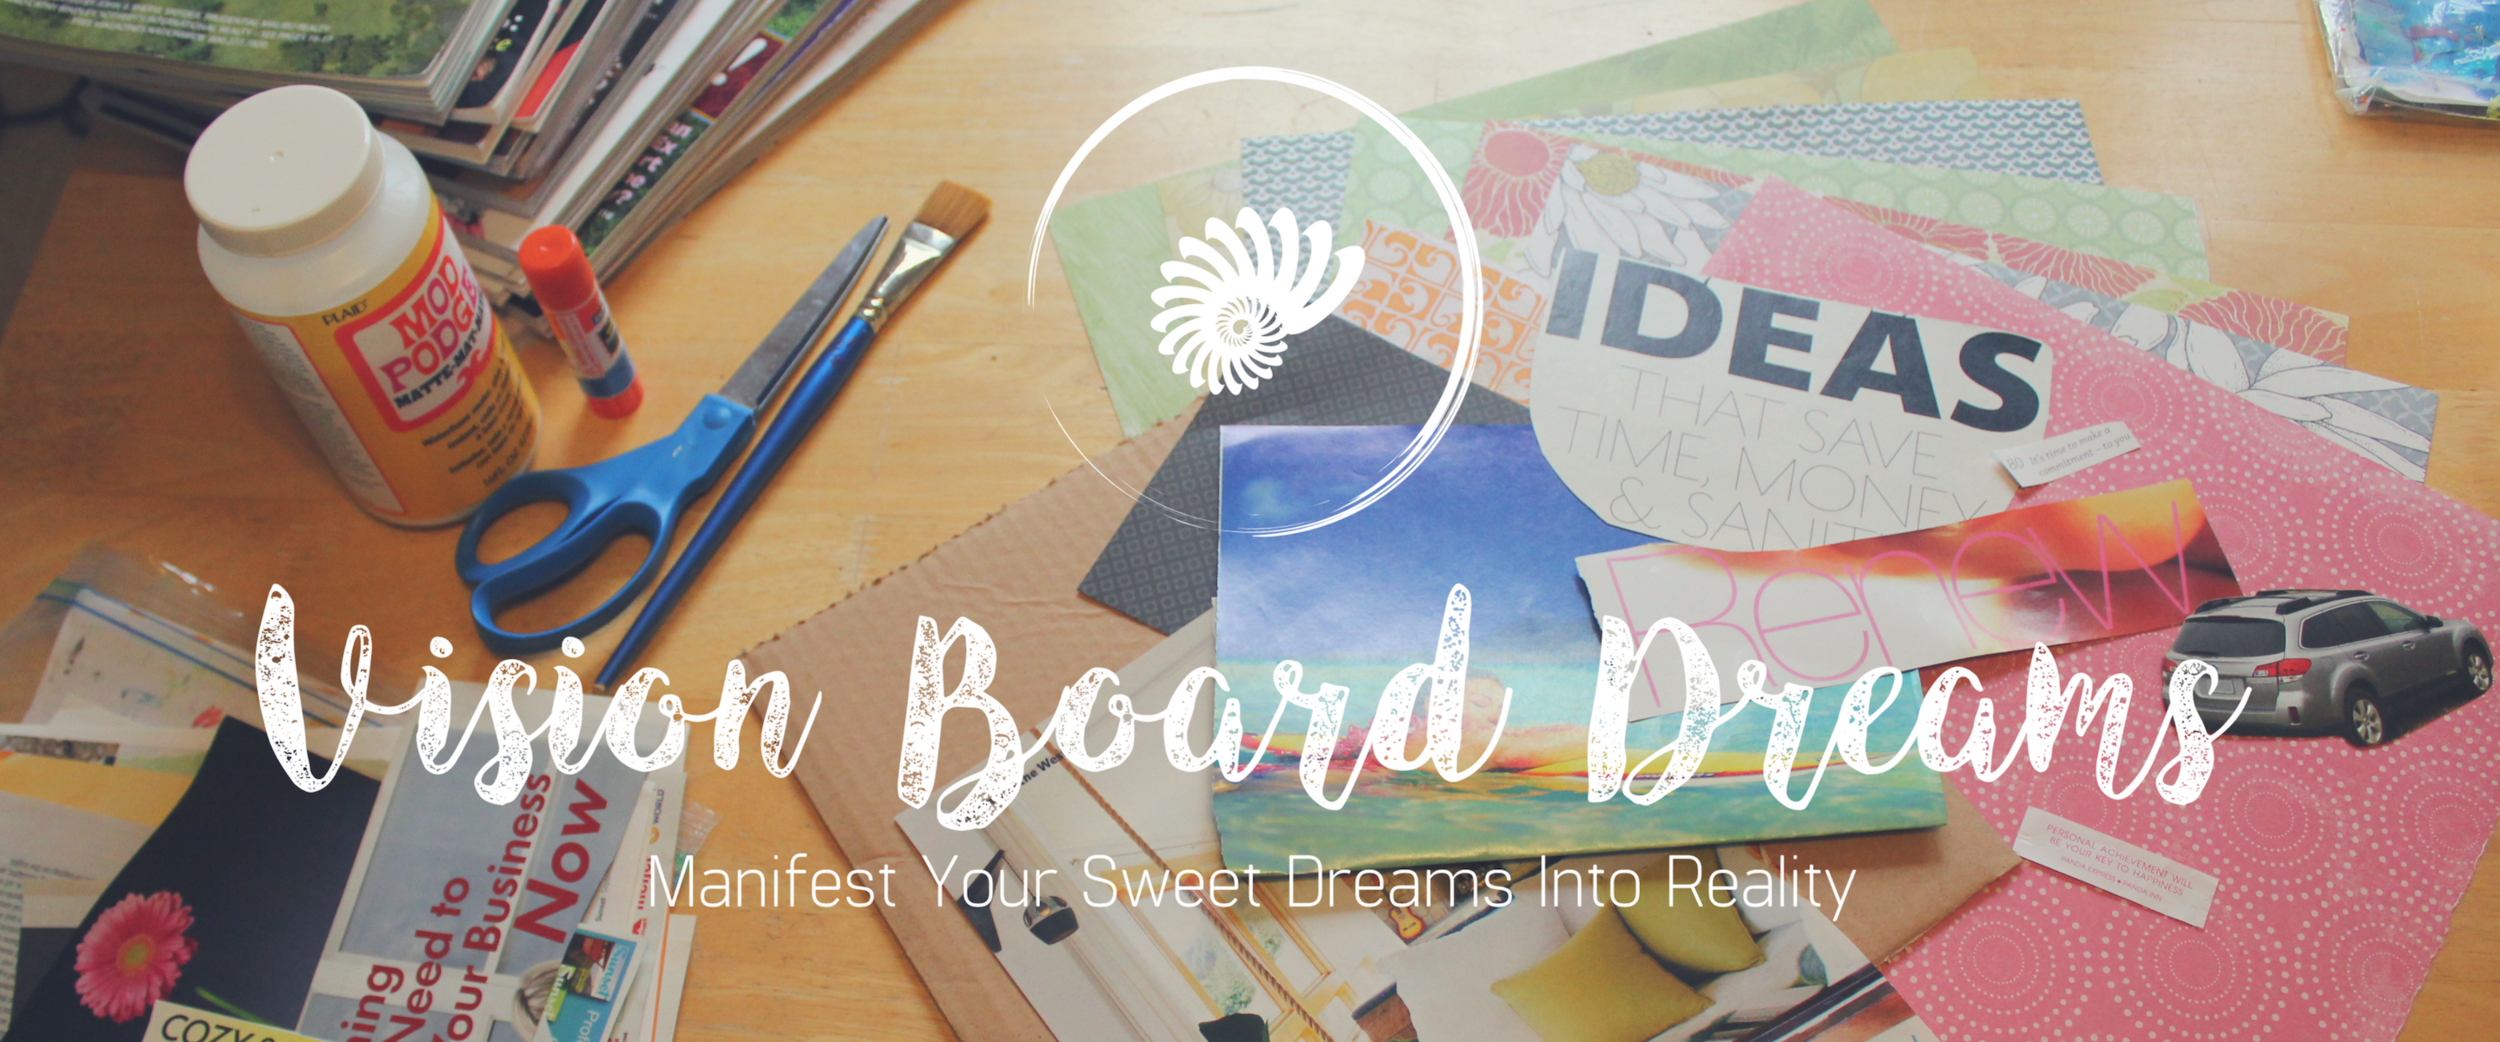 vision board dreams with artist and creativity coach desiree east